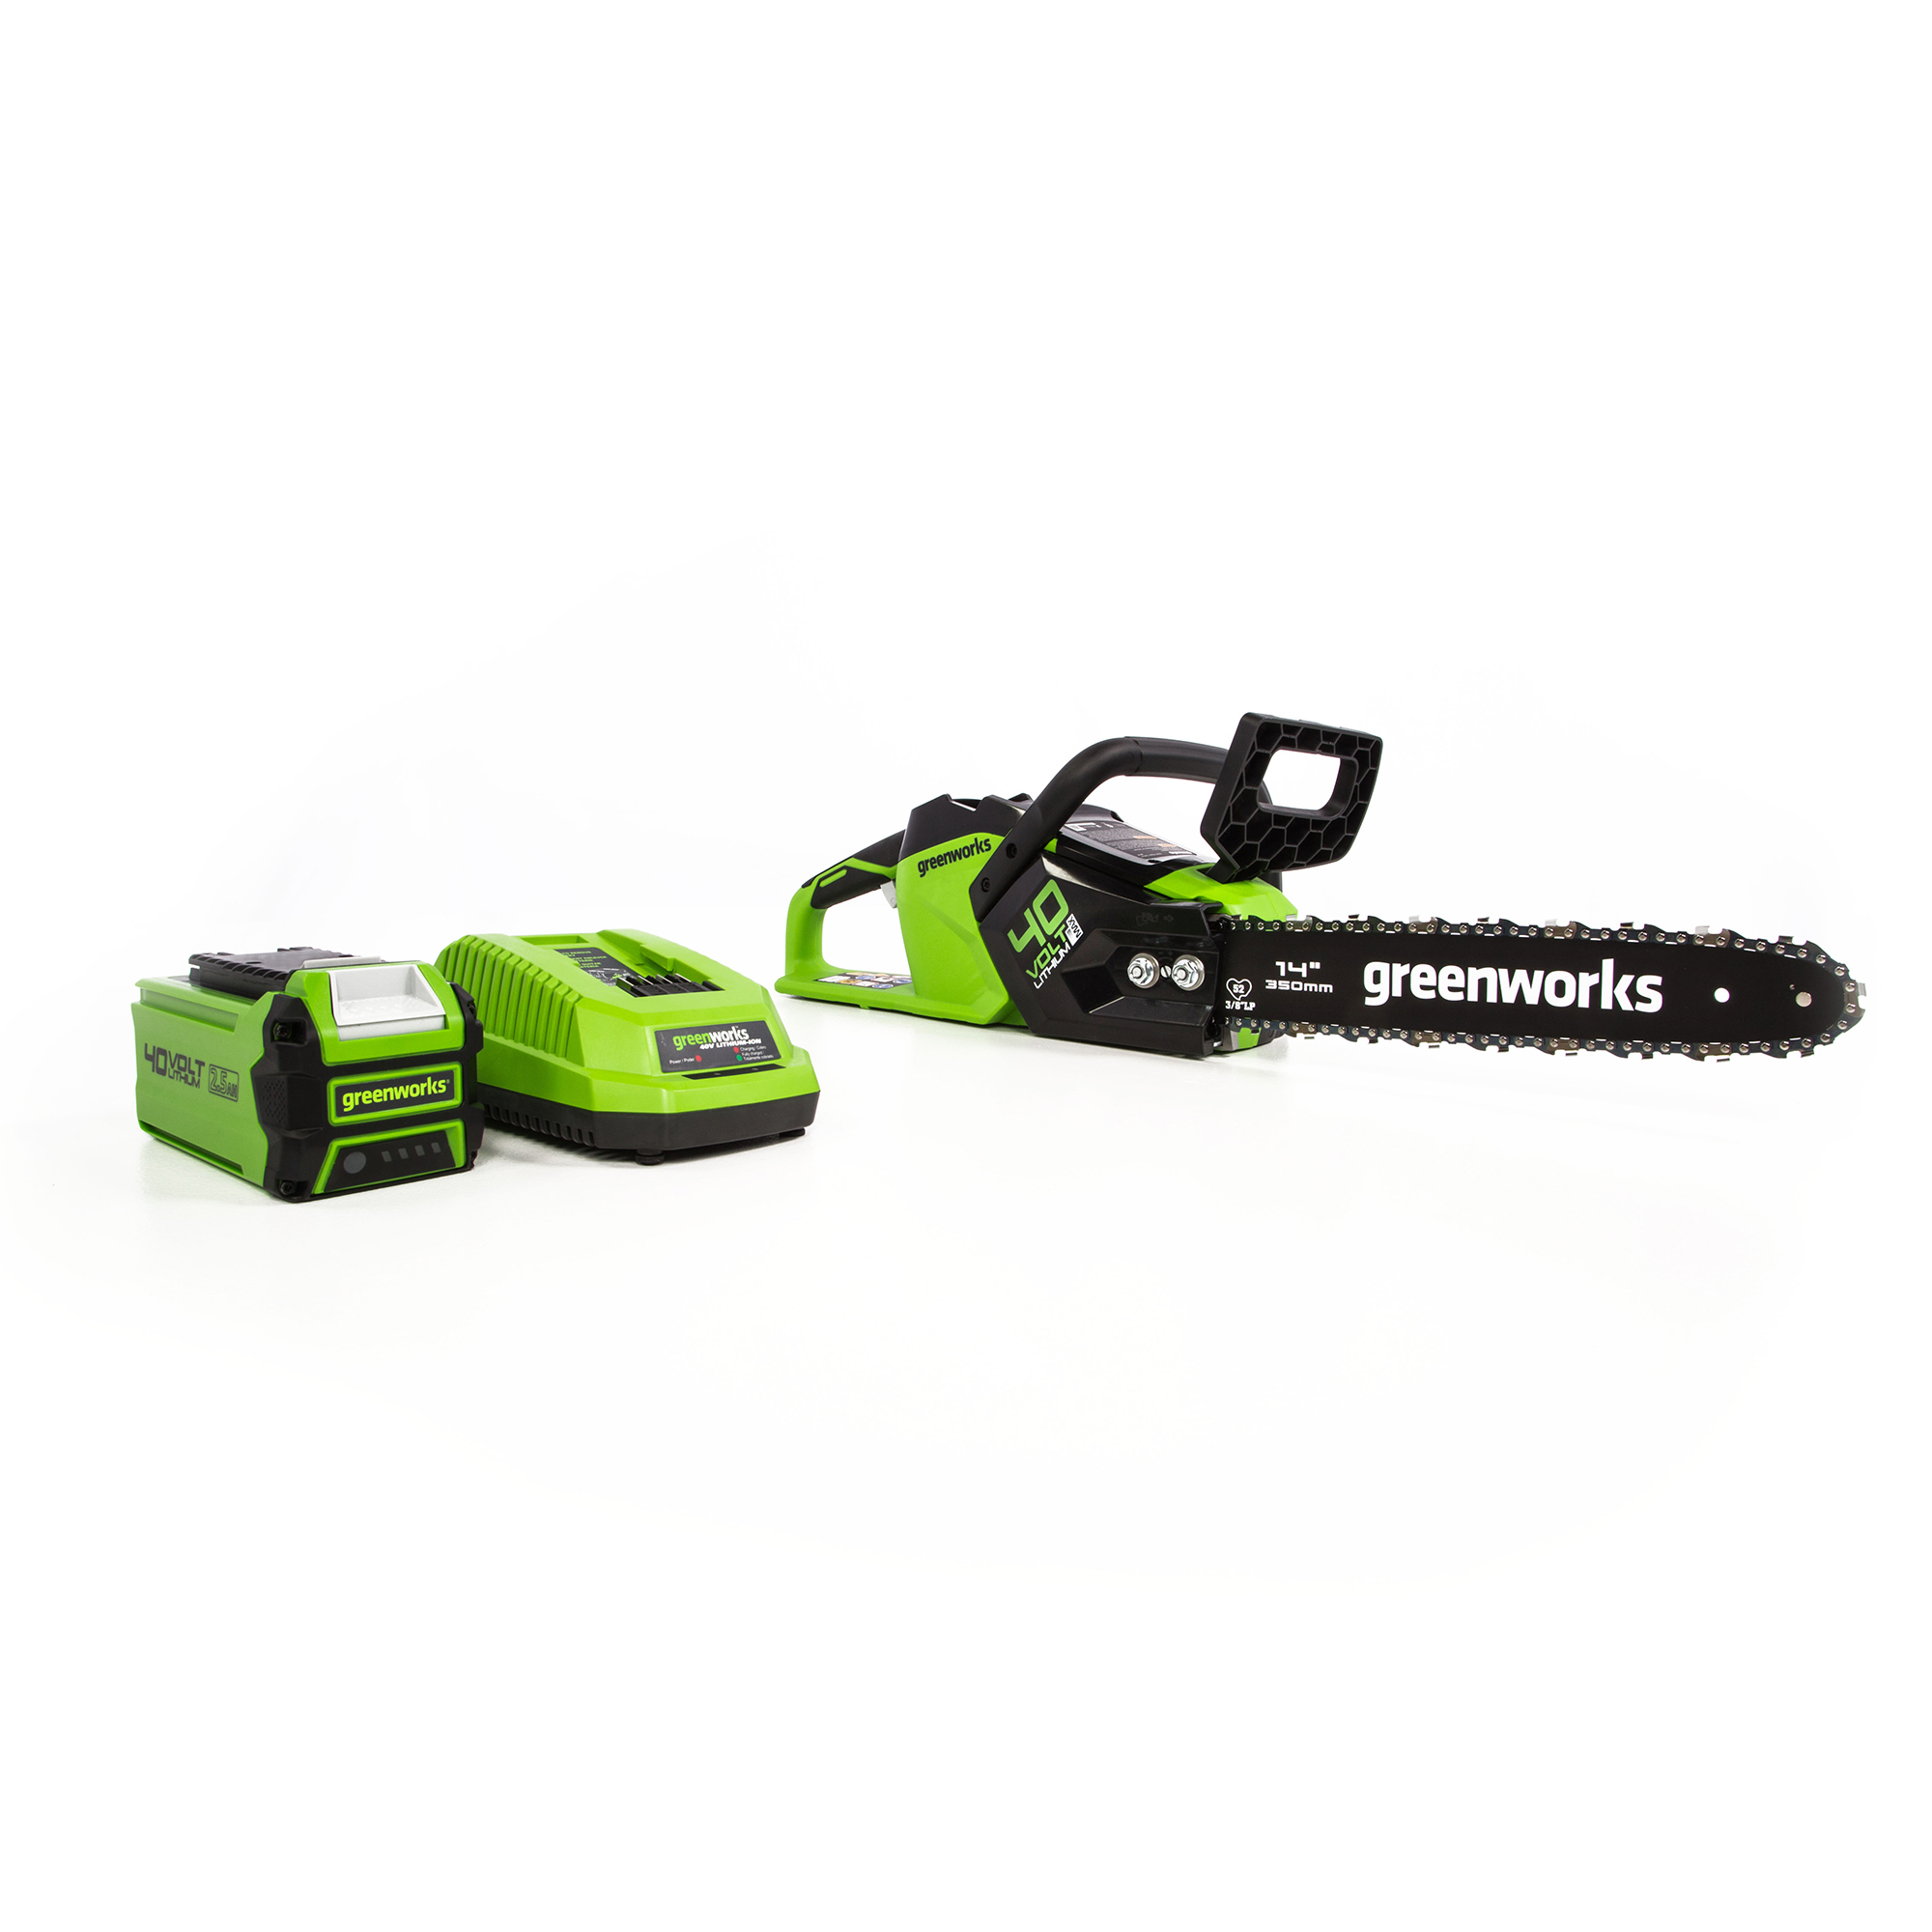 Greenworks 40V 14-Inch Brushless Chainsaw 2.5Ah Battery and Charger Included 2012802 by Sunrise Global Marketing, LLC